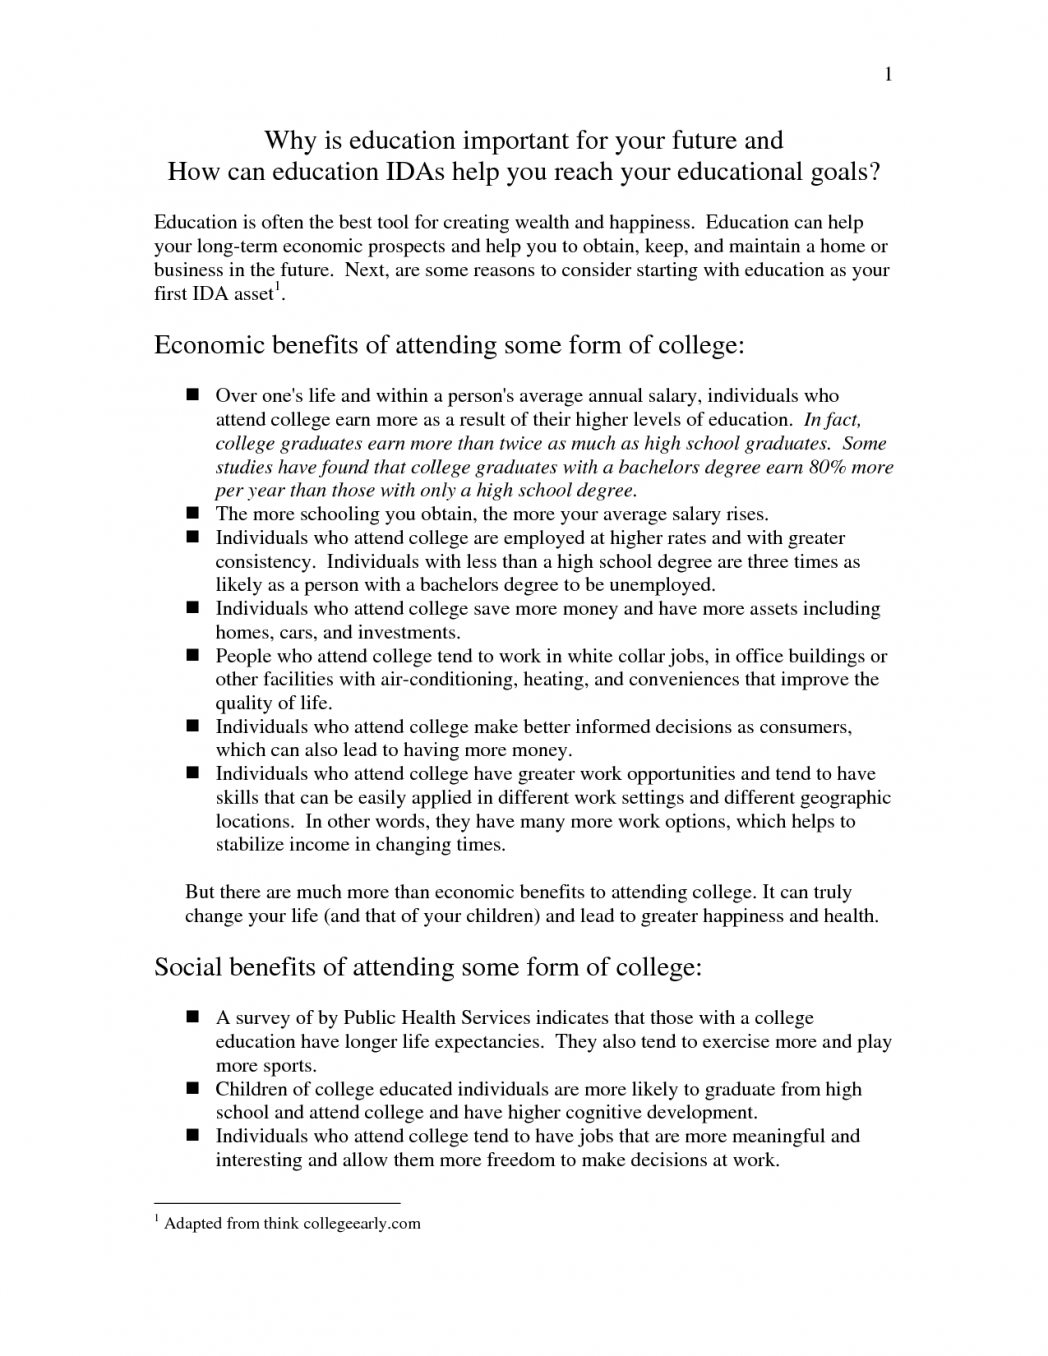 001 Essay Example Happiness Essays Education Definition Of How To Write An About Physical Why College Important 5 Educational Leadership Describing Your Goals Importance Online And Career Frightening Is In Our Life Full